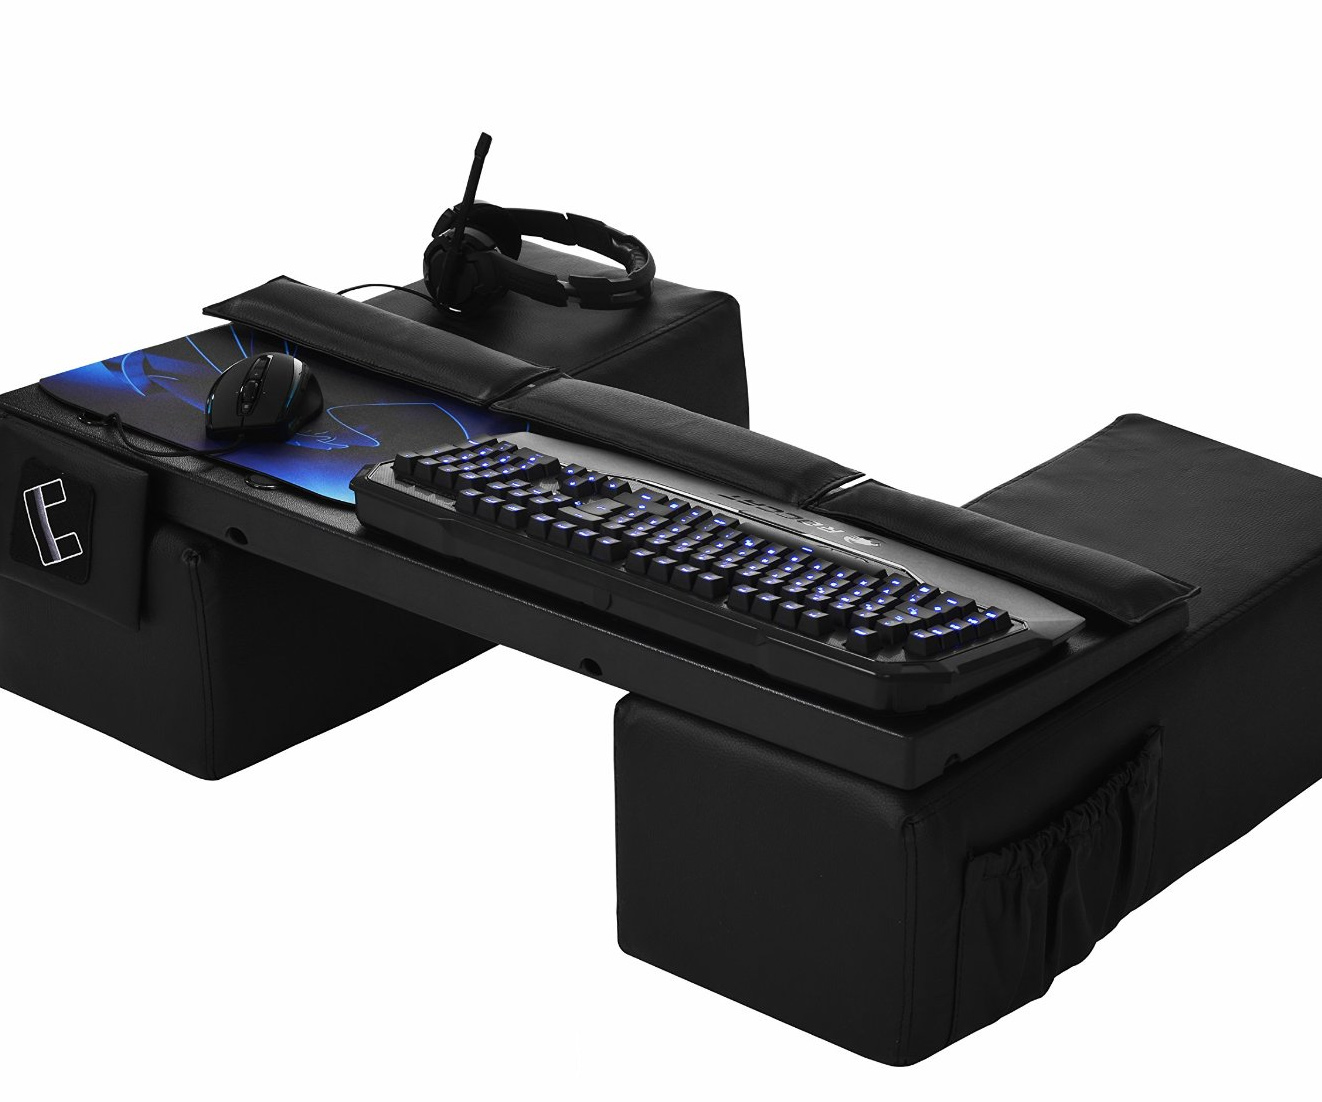 Keyboard And Mouse Lap Desk 2